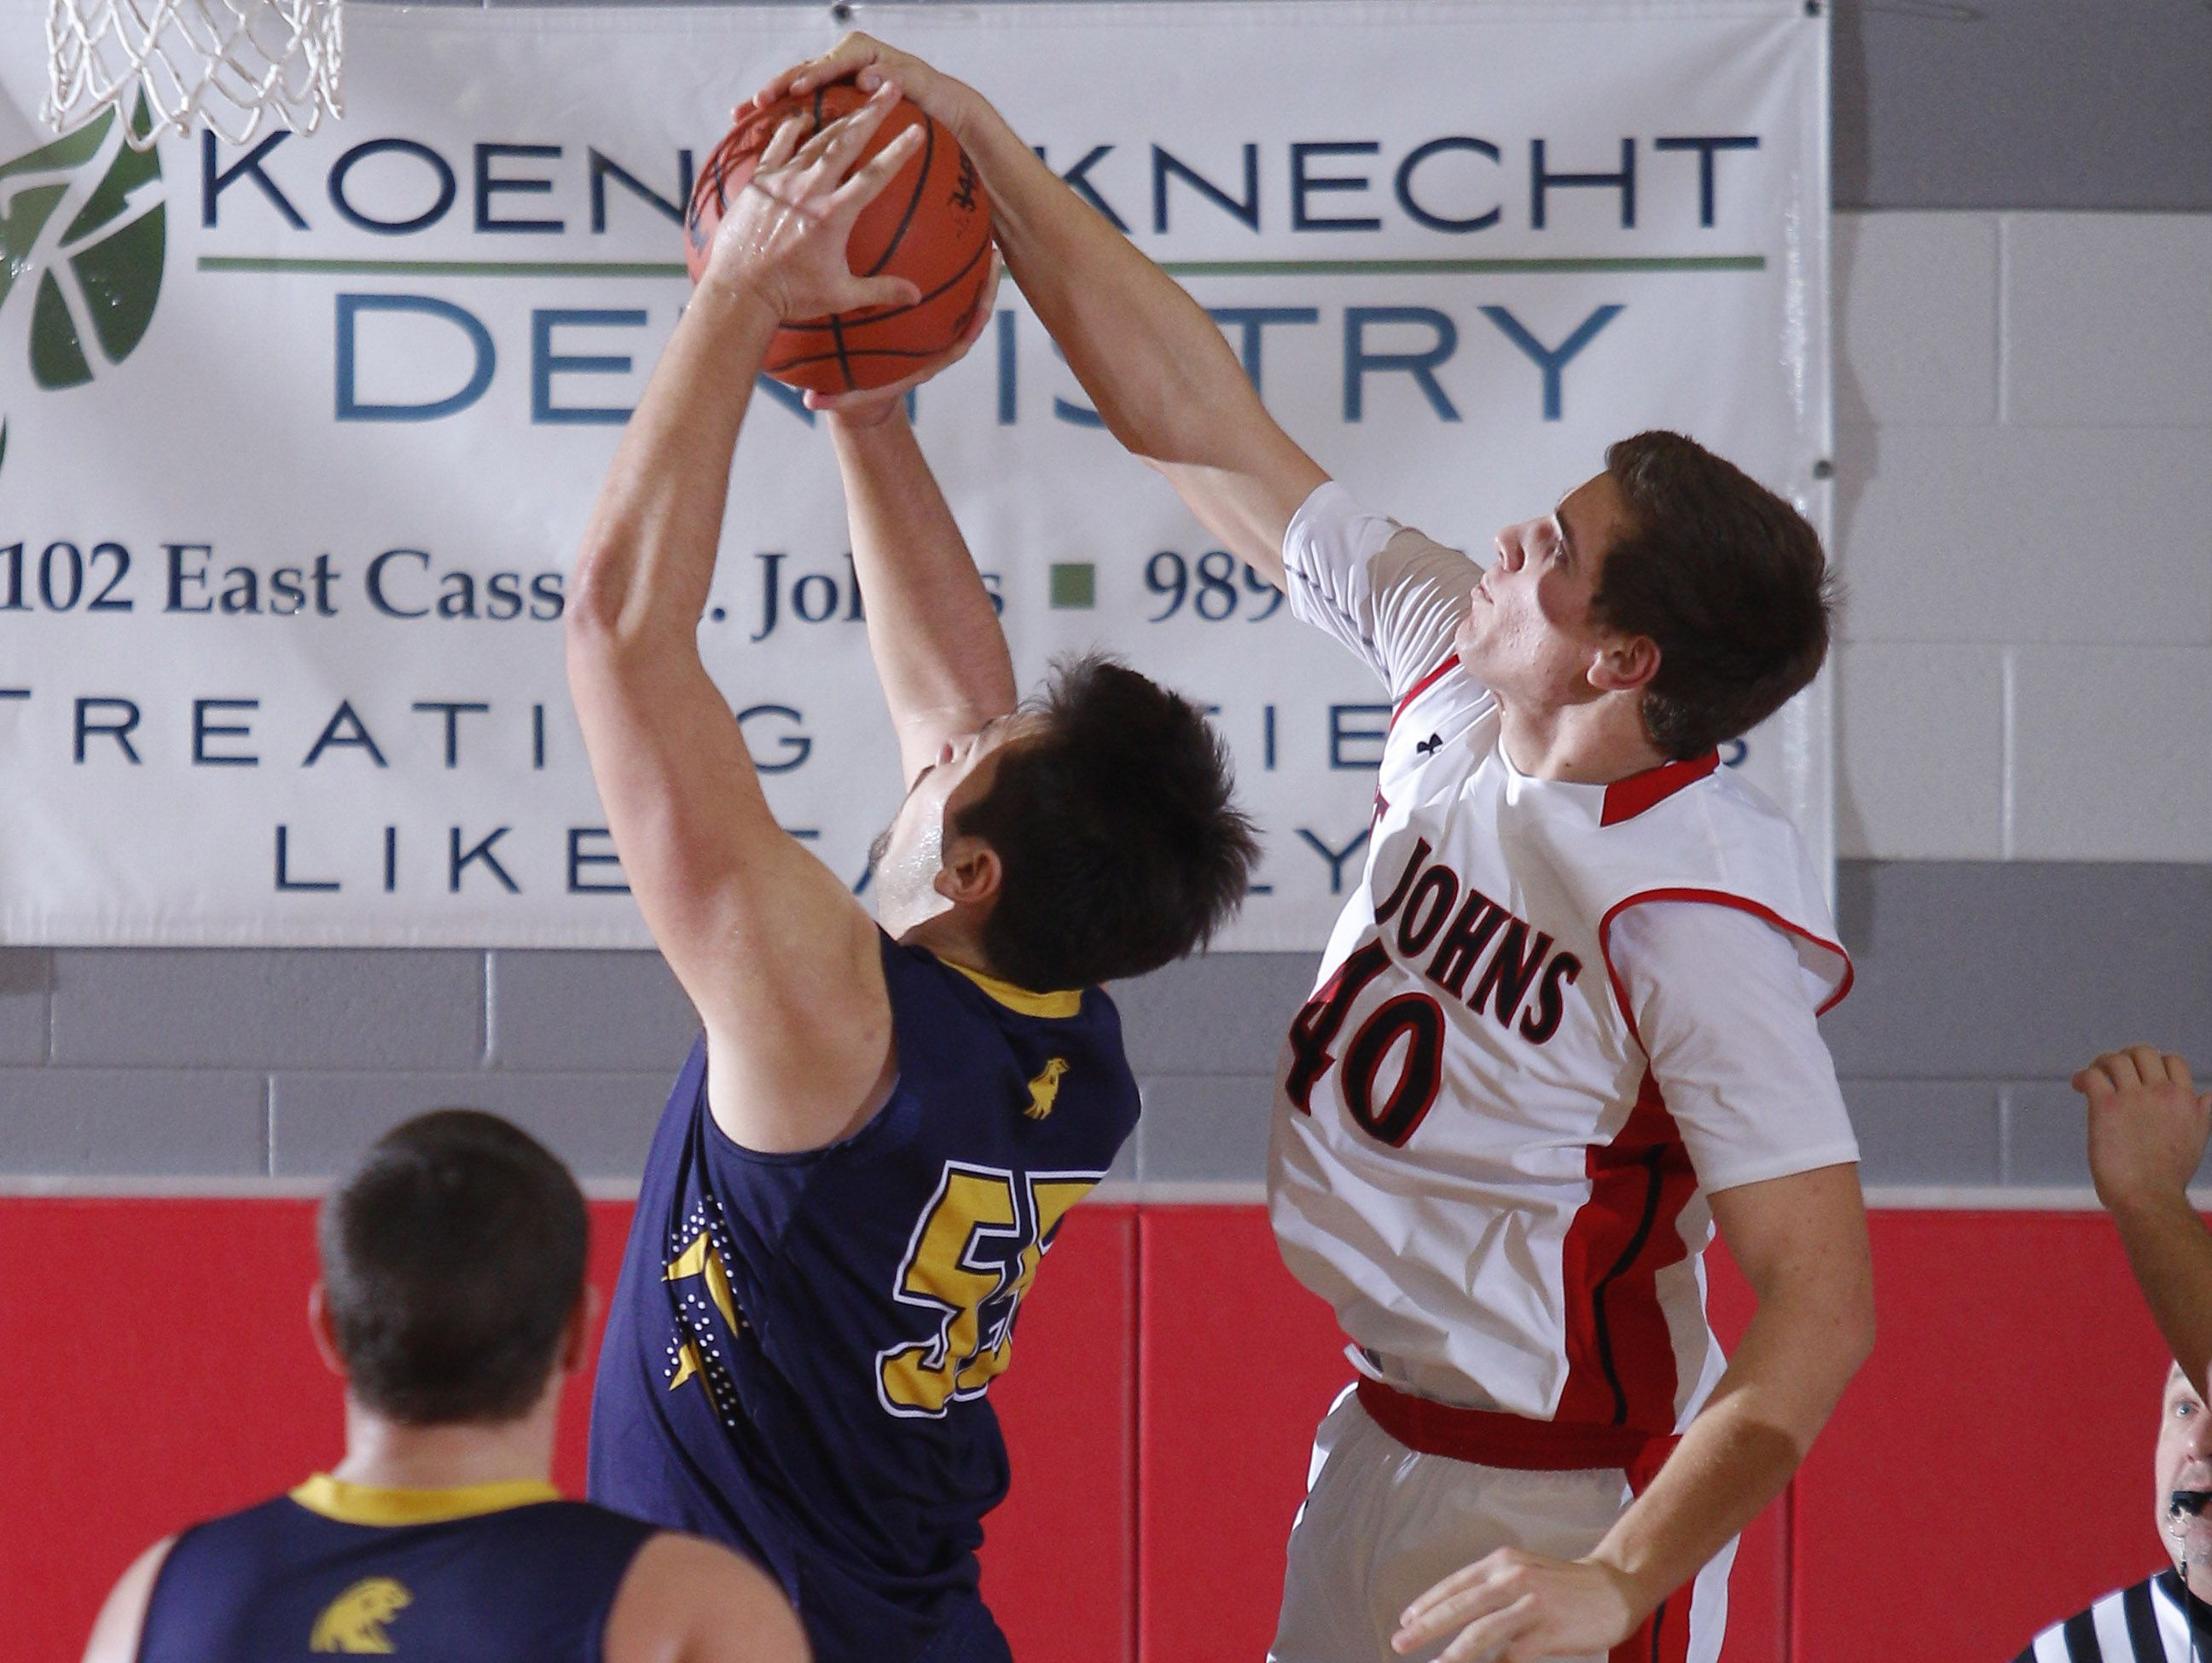 St. Johns' Caleb Paksi, right, blocks a shot by DeWitt's Alec Guillaume Friday, Dec. 16, 2016, in St. Johns, Mich.